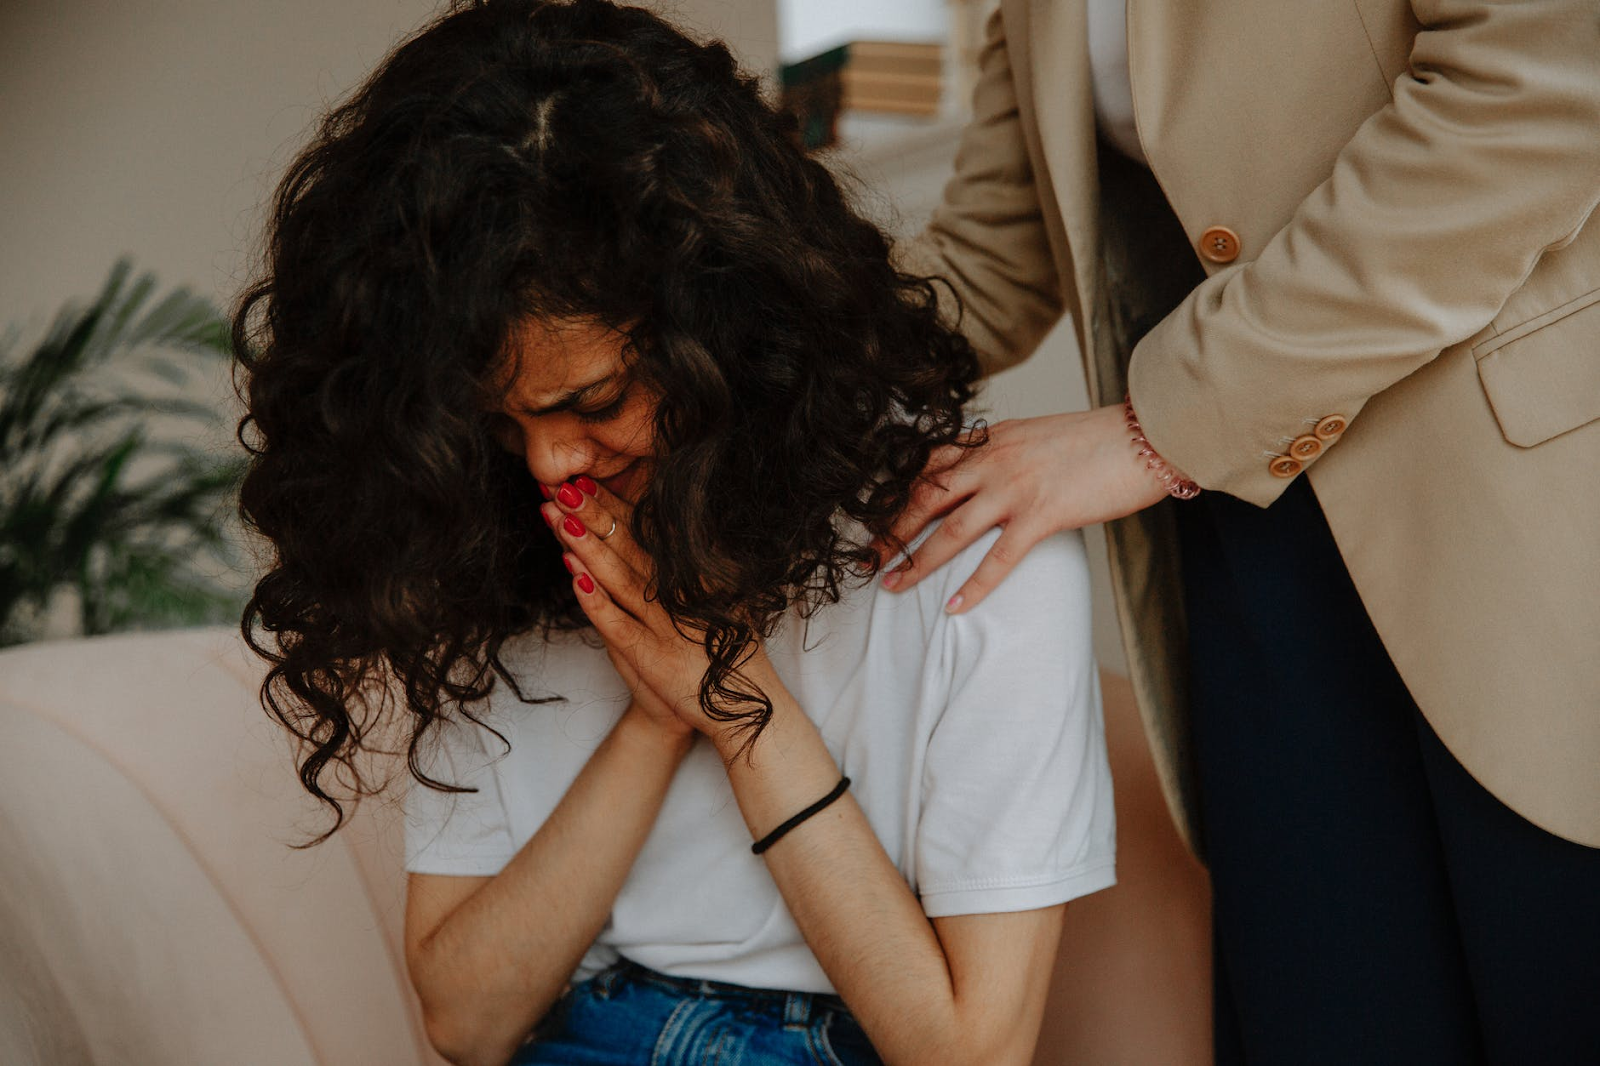 An image of a woman sitting on a couch and crying into her hands, which are pressed together. Someone stands behind her, their face out of frame, with both of their hands on her shoulders in comfort.